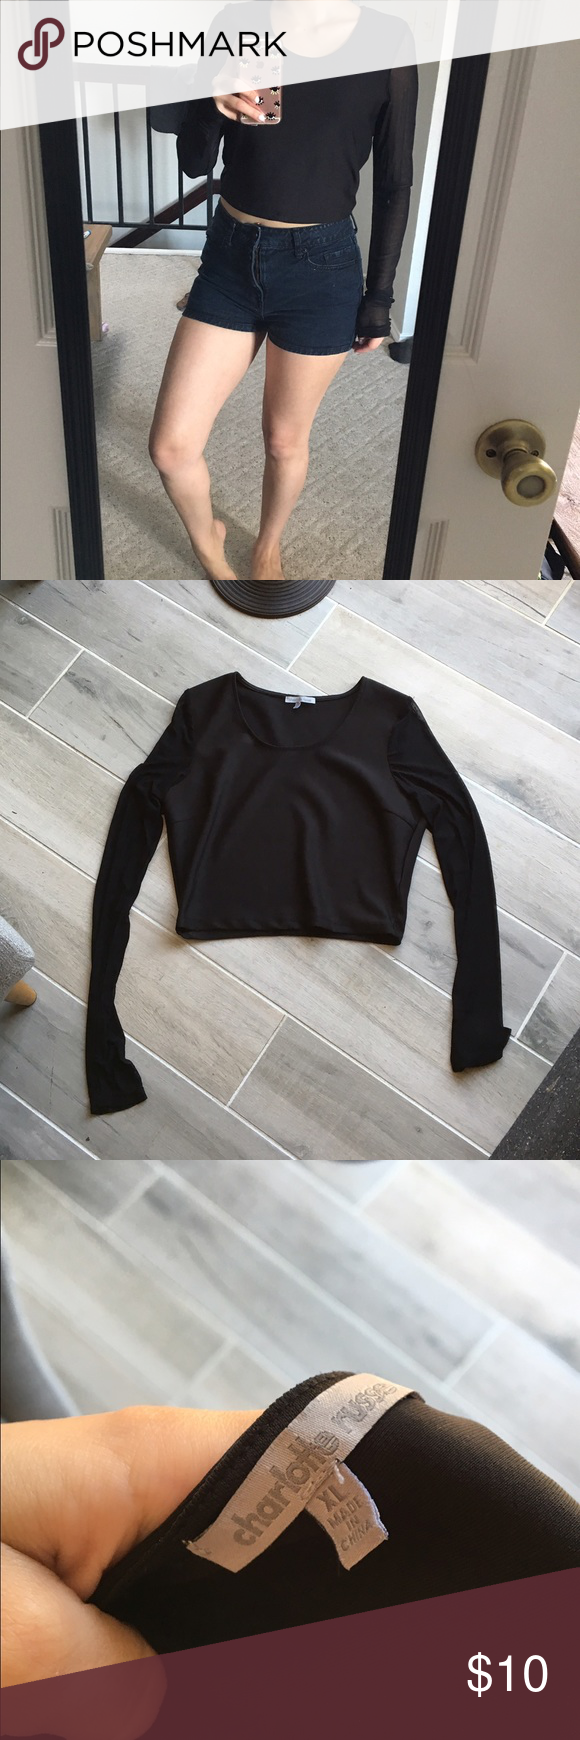 SEE-THROUGH ARMS BLACK TOP Good condition. Arms are see through. Says XL but I'm a small and could pull it off. I would say it's medium Tops Tees - Short Sleeve